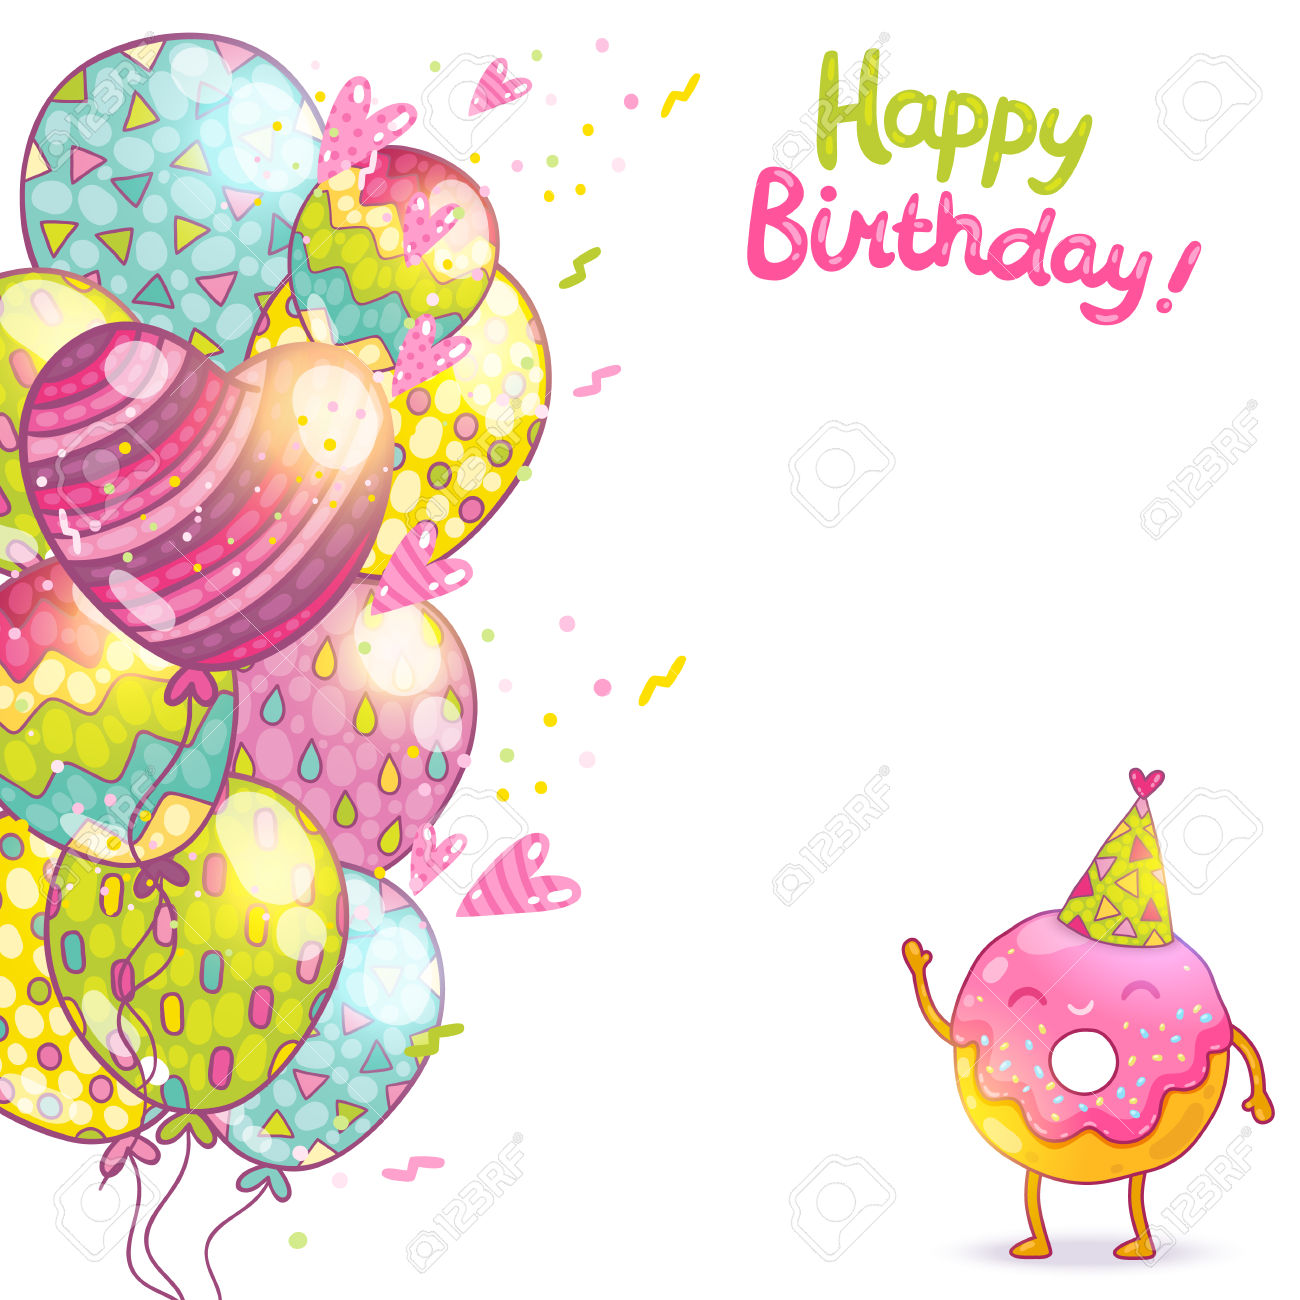 happy birthday card design template ; happy-birthday-card-background-with-cute-donut-vector-holiday-party-template-blank-design-with-cute-decor-birthday-card-template